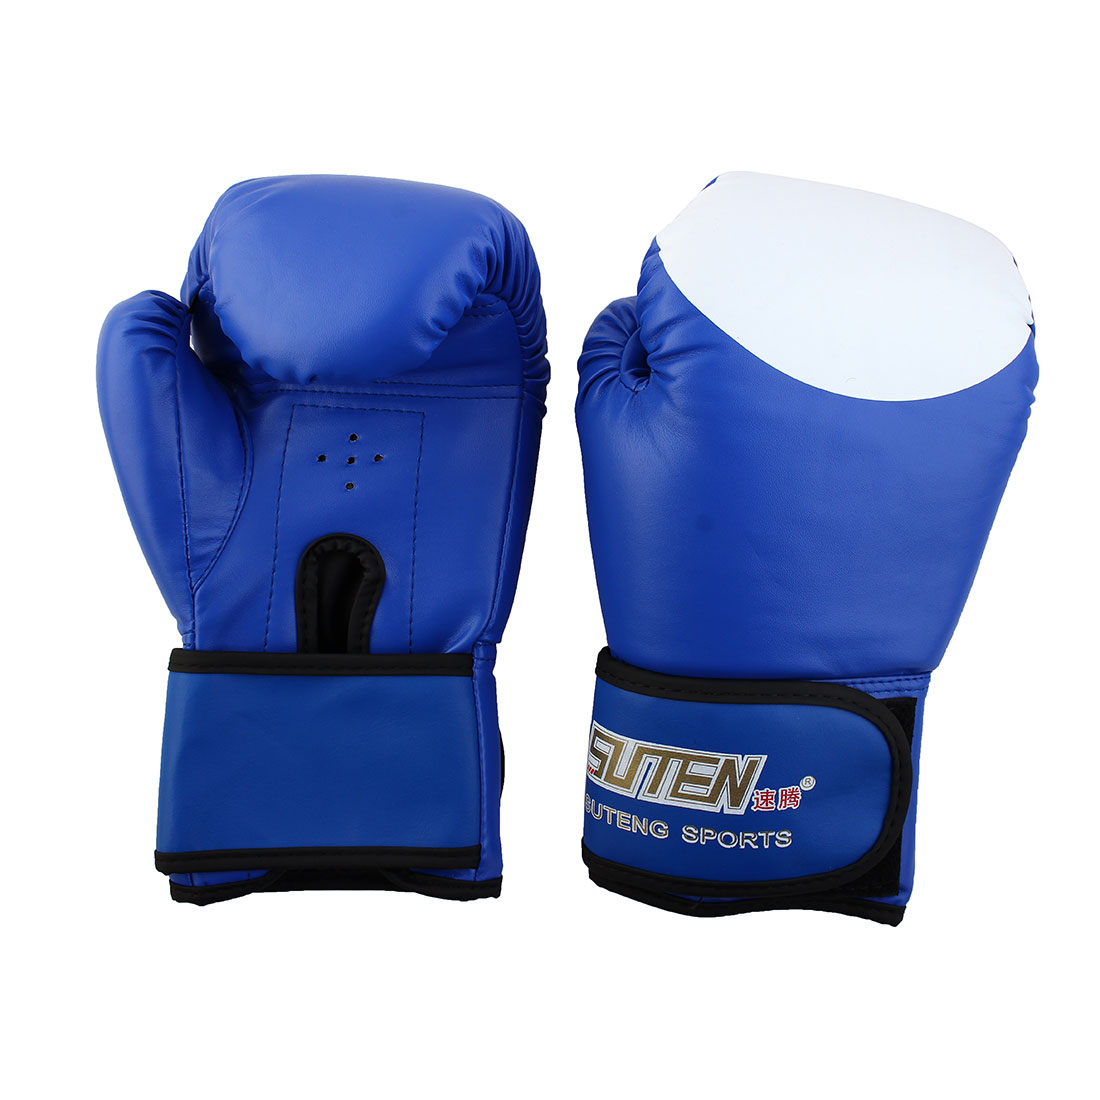 SUTENG Authorized Adult PU Sparring Punching Bag Mitts Kickboxing Boxing Gloves Pair Blue